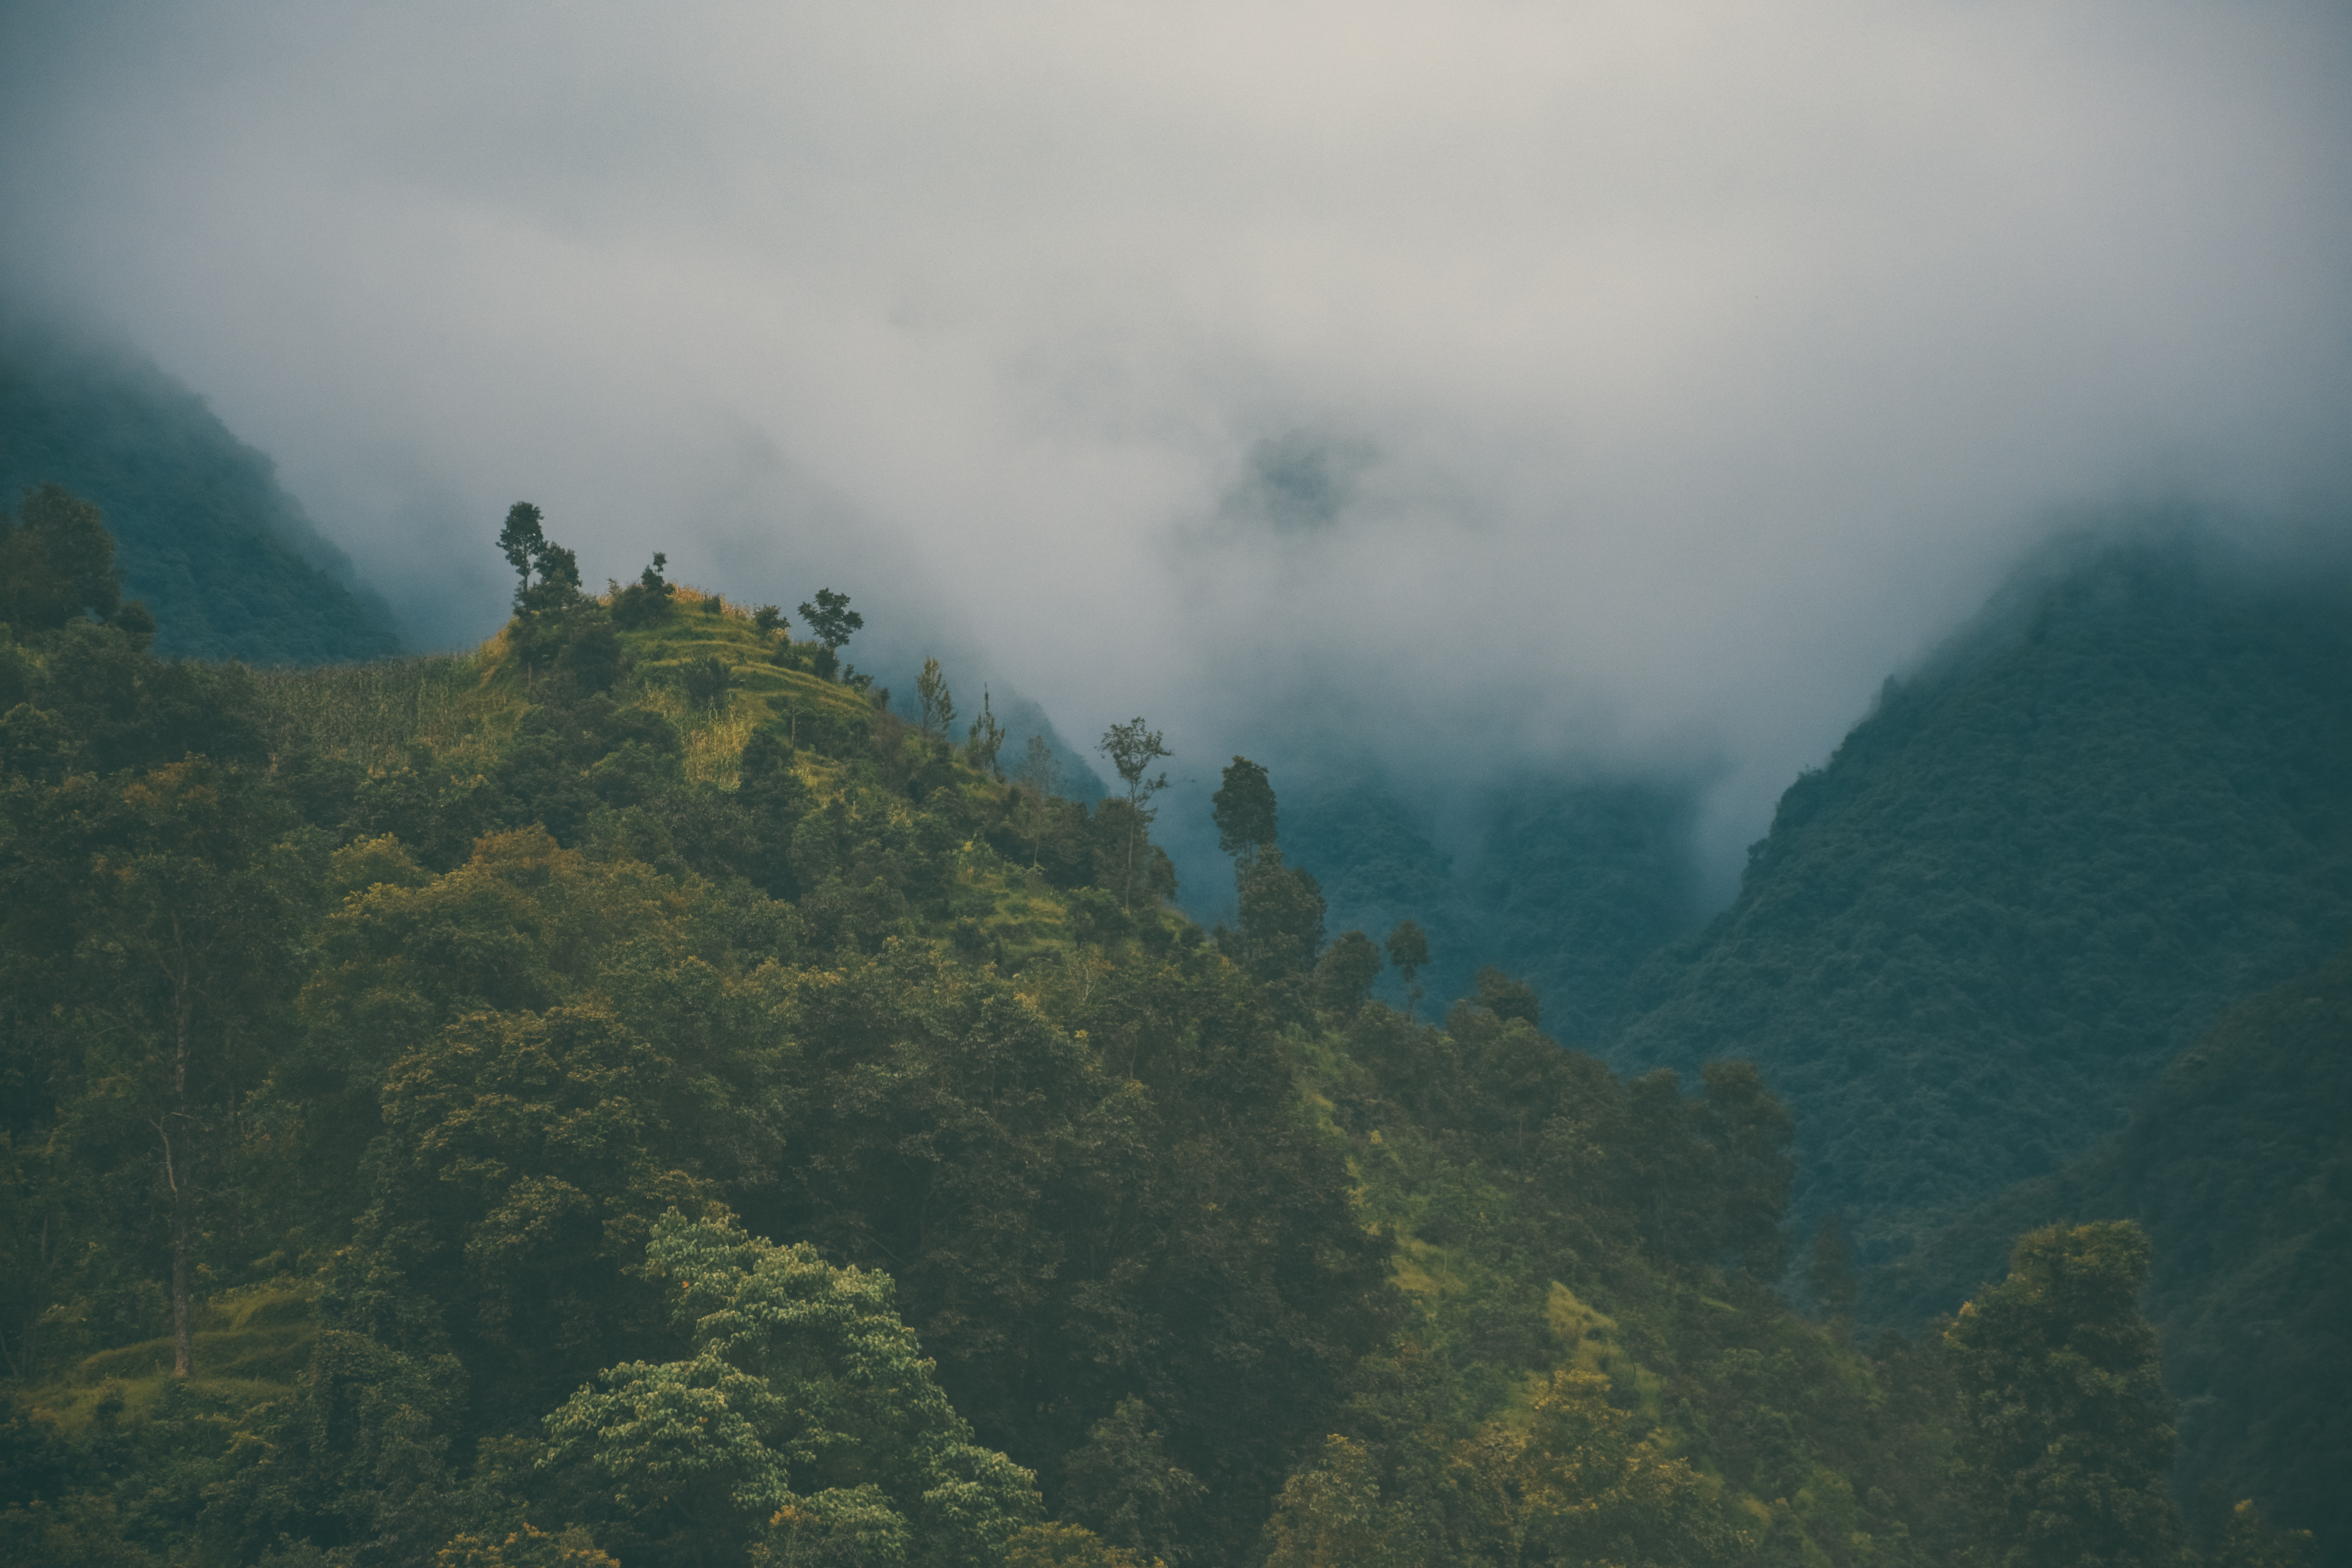 Fog over a wooded mountain valley in Nepal